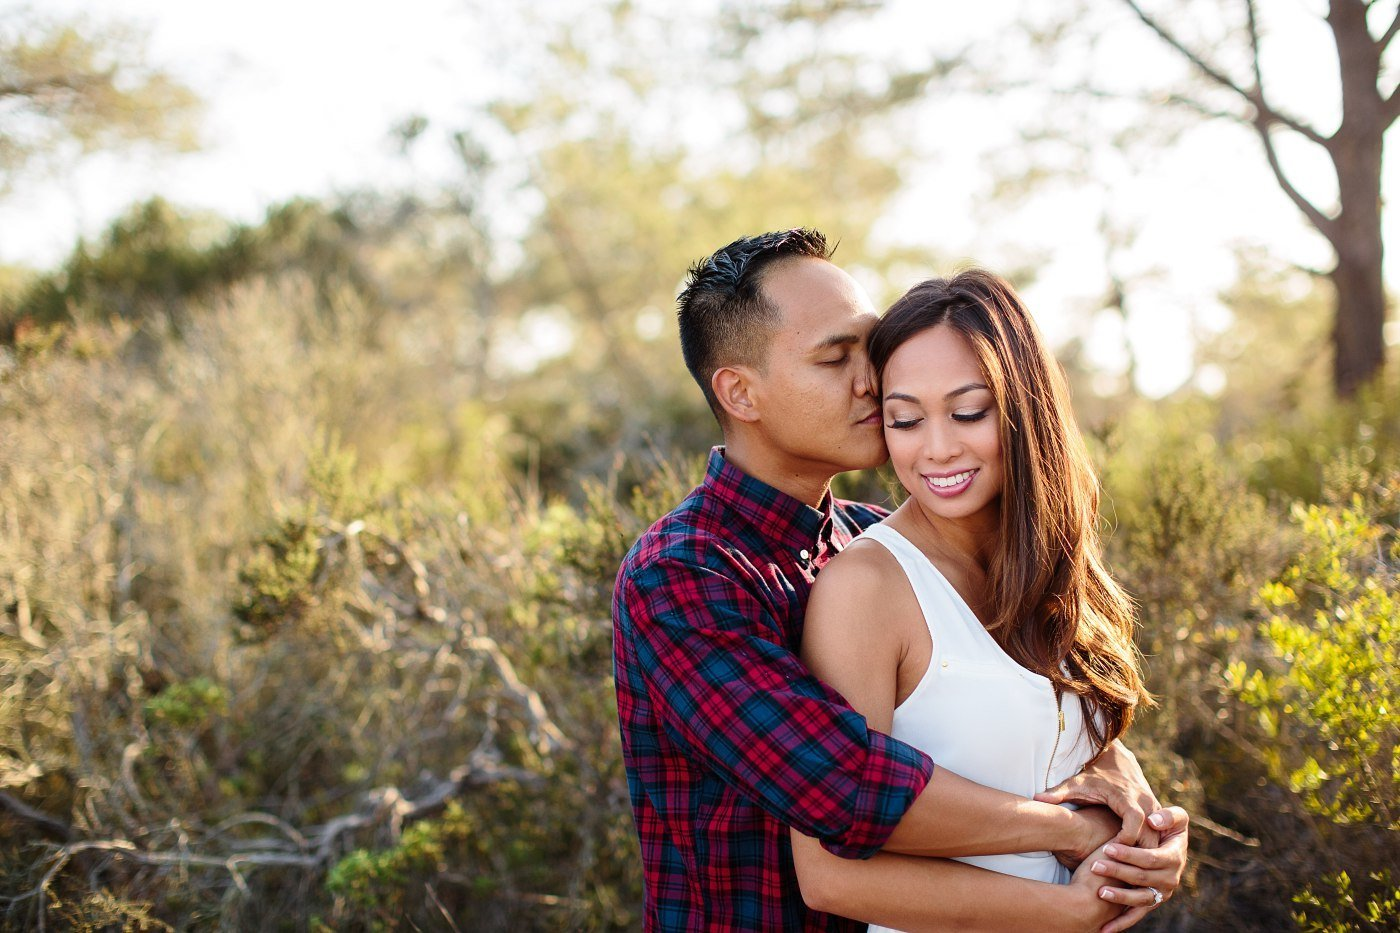 Torrey pines trails engagement